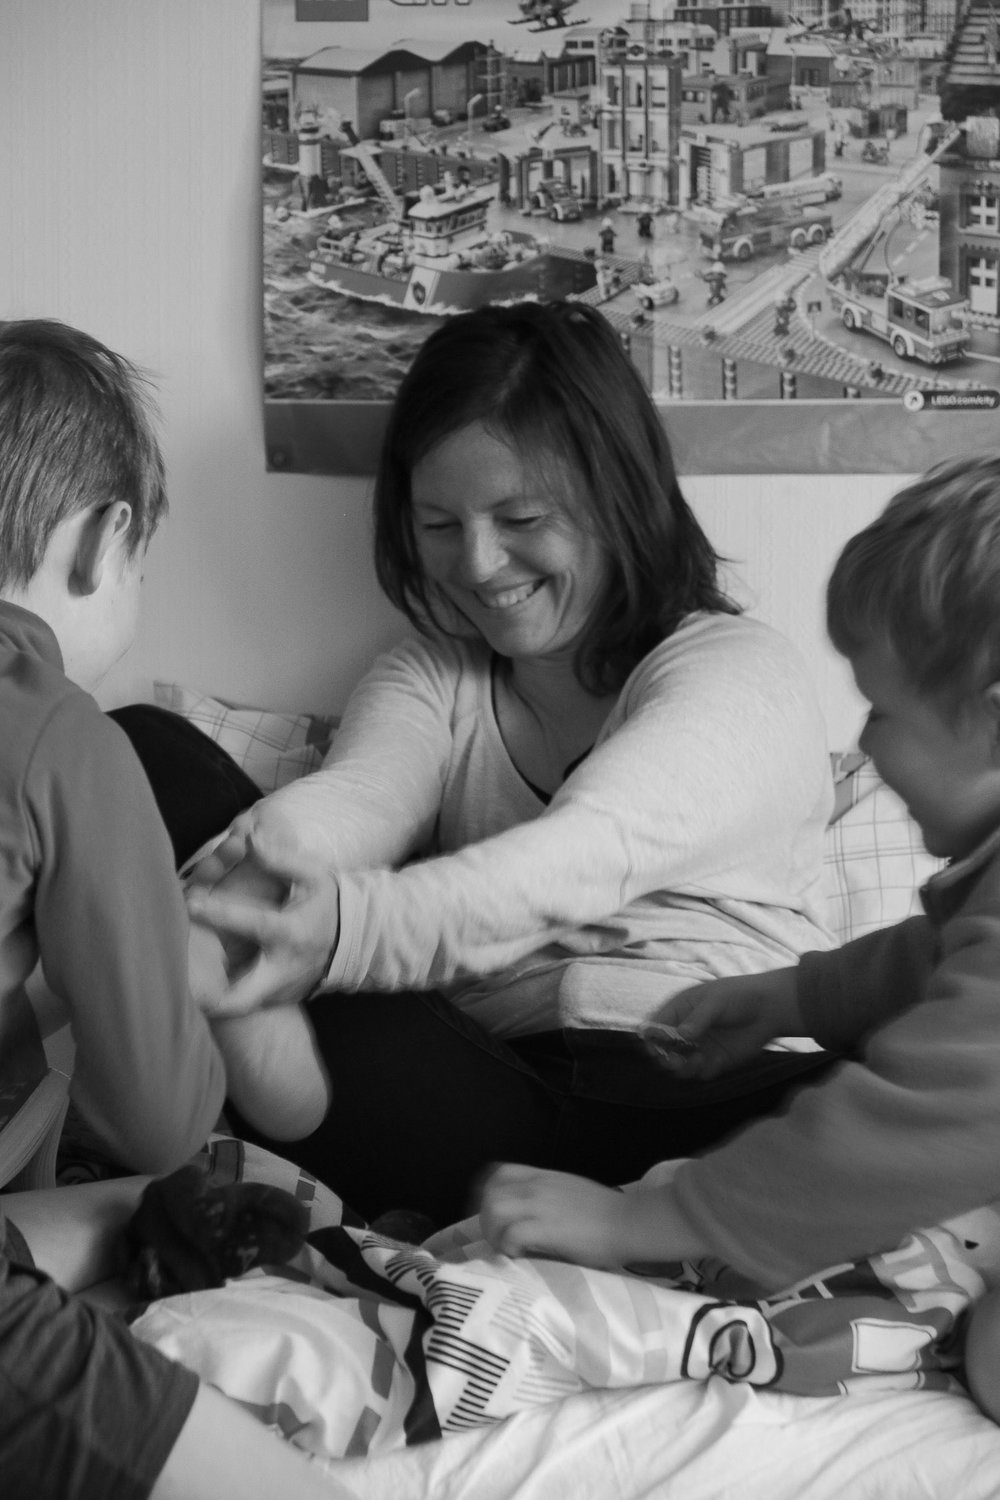 mum-and-sons-playing-together-laughing.jpg